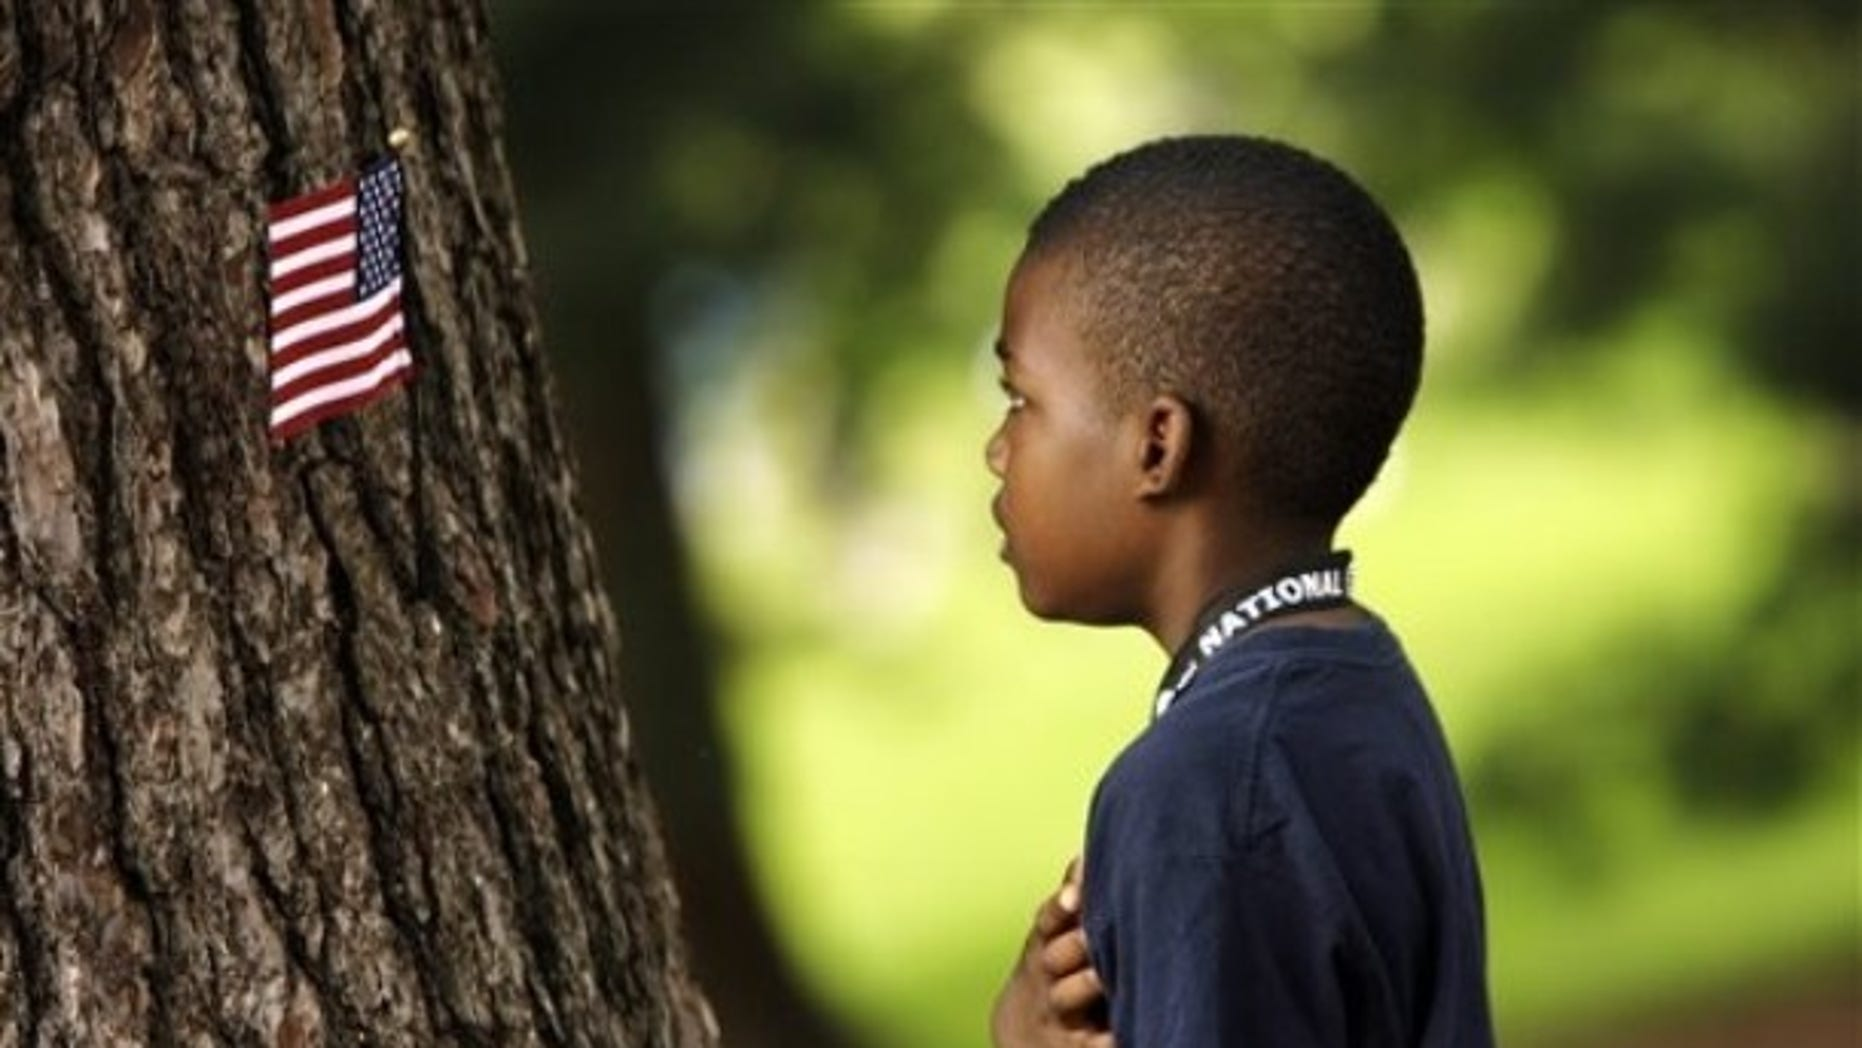 A child says the Pledge of Allegiance after placing an American flag on a tree during the second round of the AT&T National golf tournament at Congressional Country Club, Friday, July 3, 2009, in Bethesda, Md. (AP Photo/Haraz N. Ghanbari)